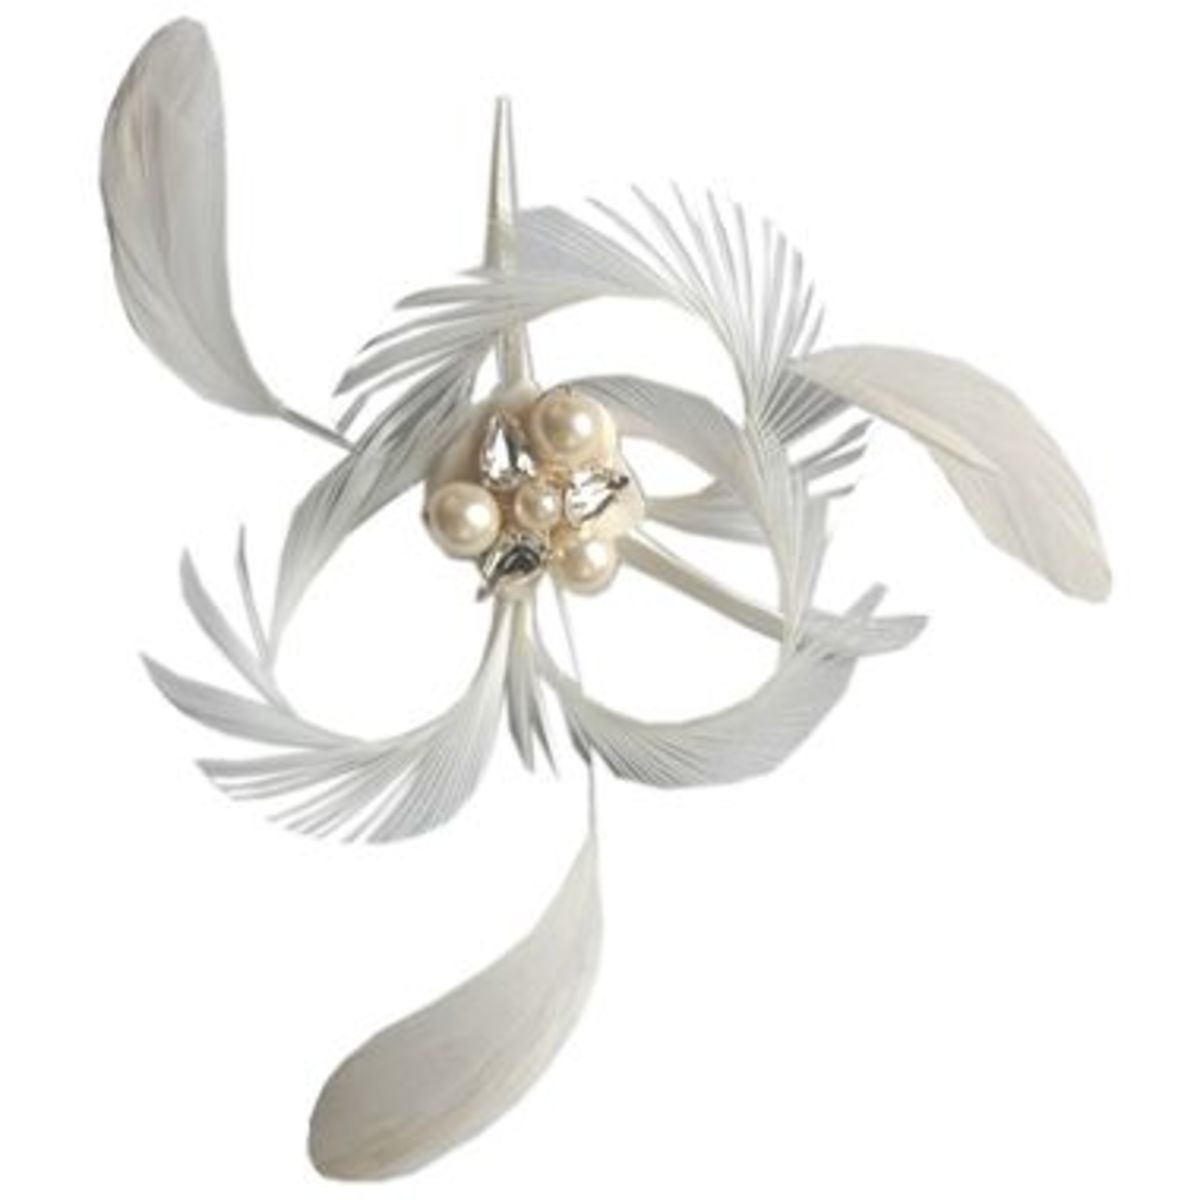 Ivory Coque Feather adds an elegant flair